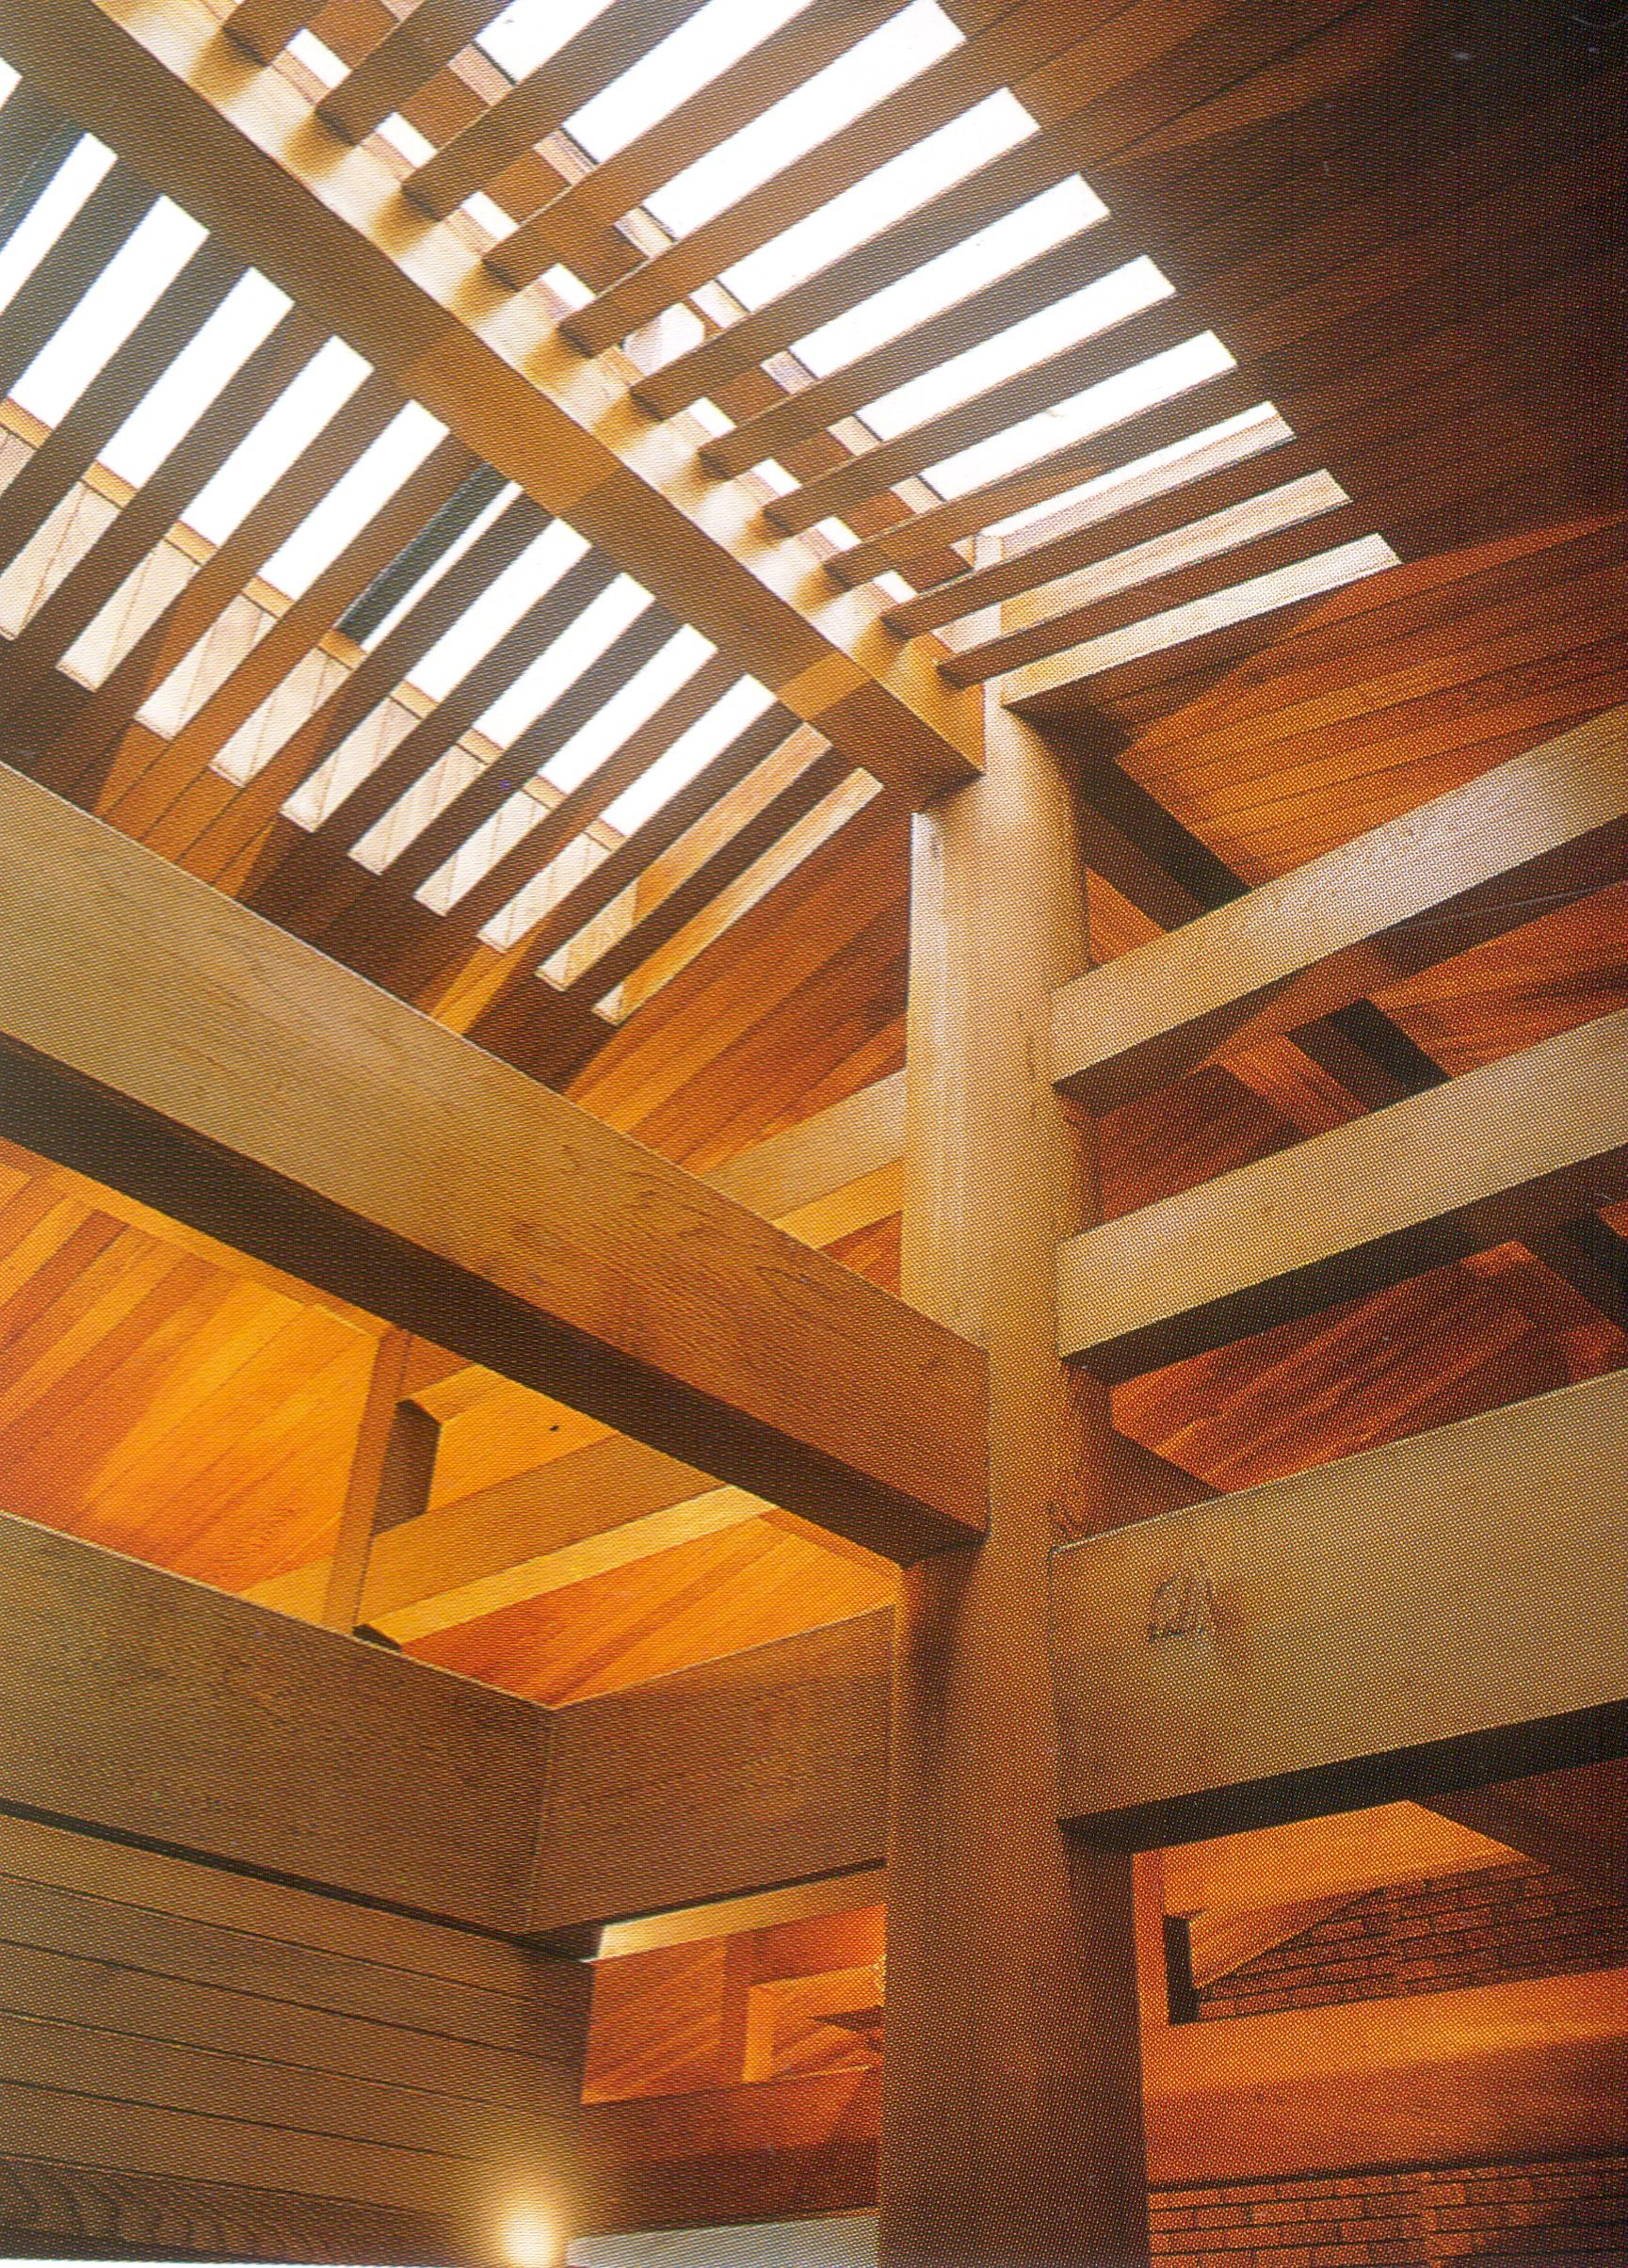 Japanese Timber Joinery A Visual Balance Between The Maker And